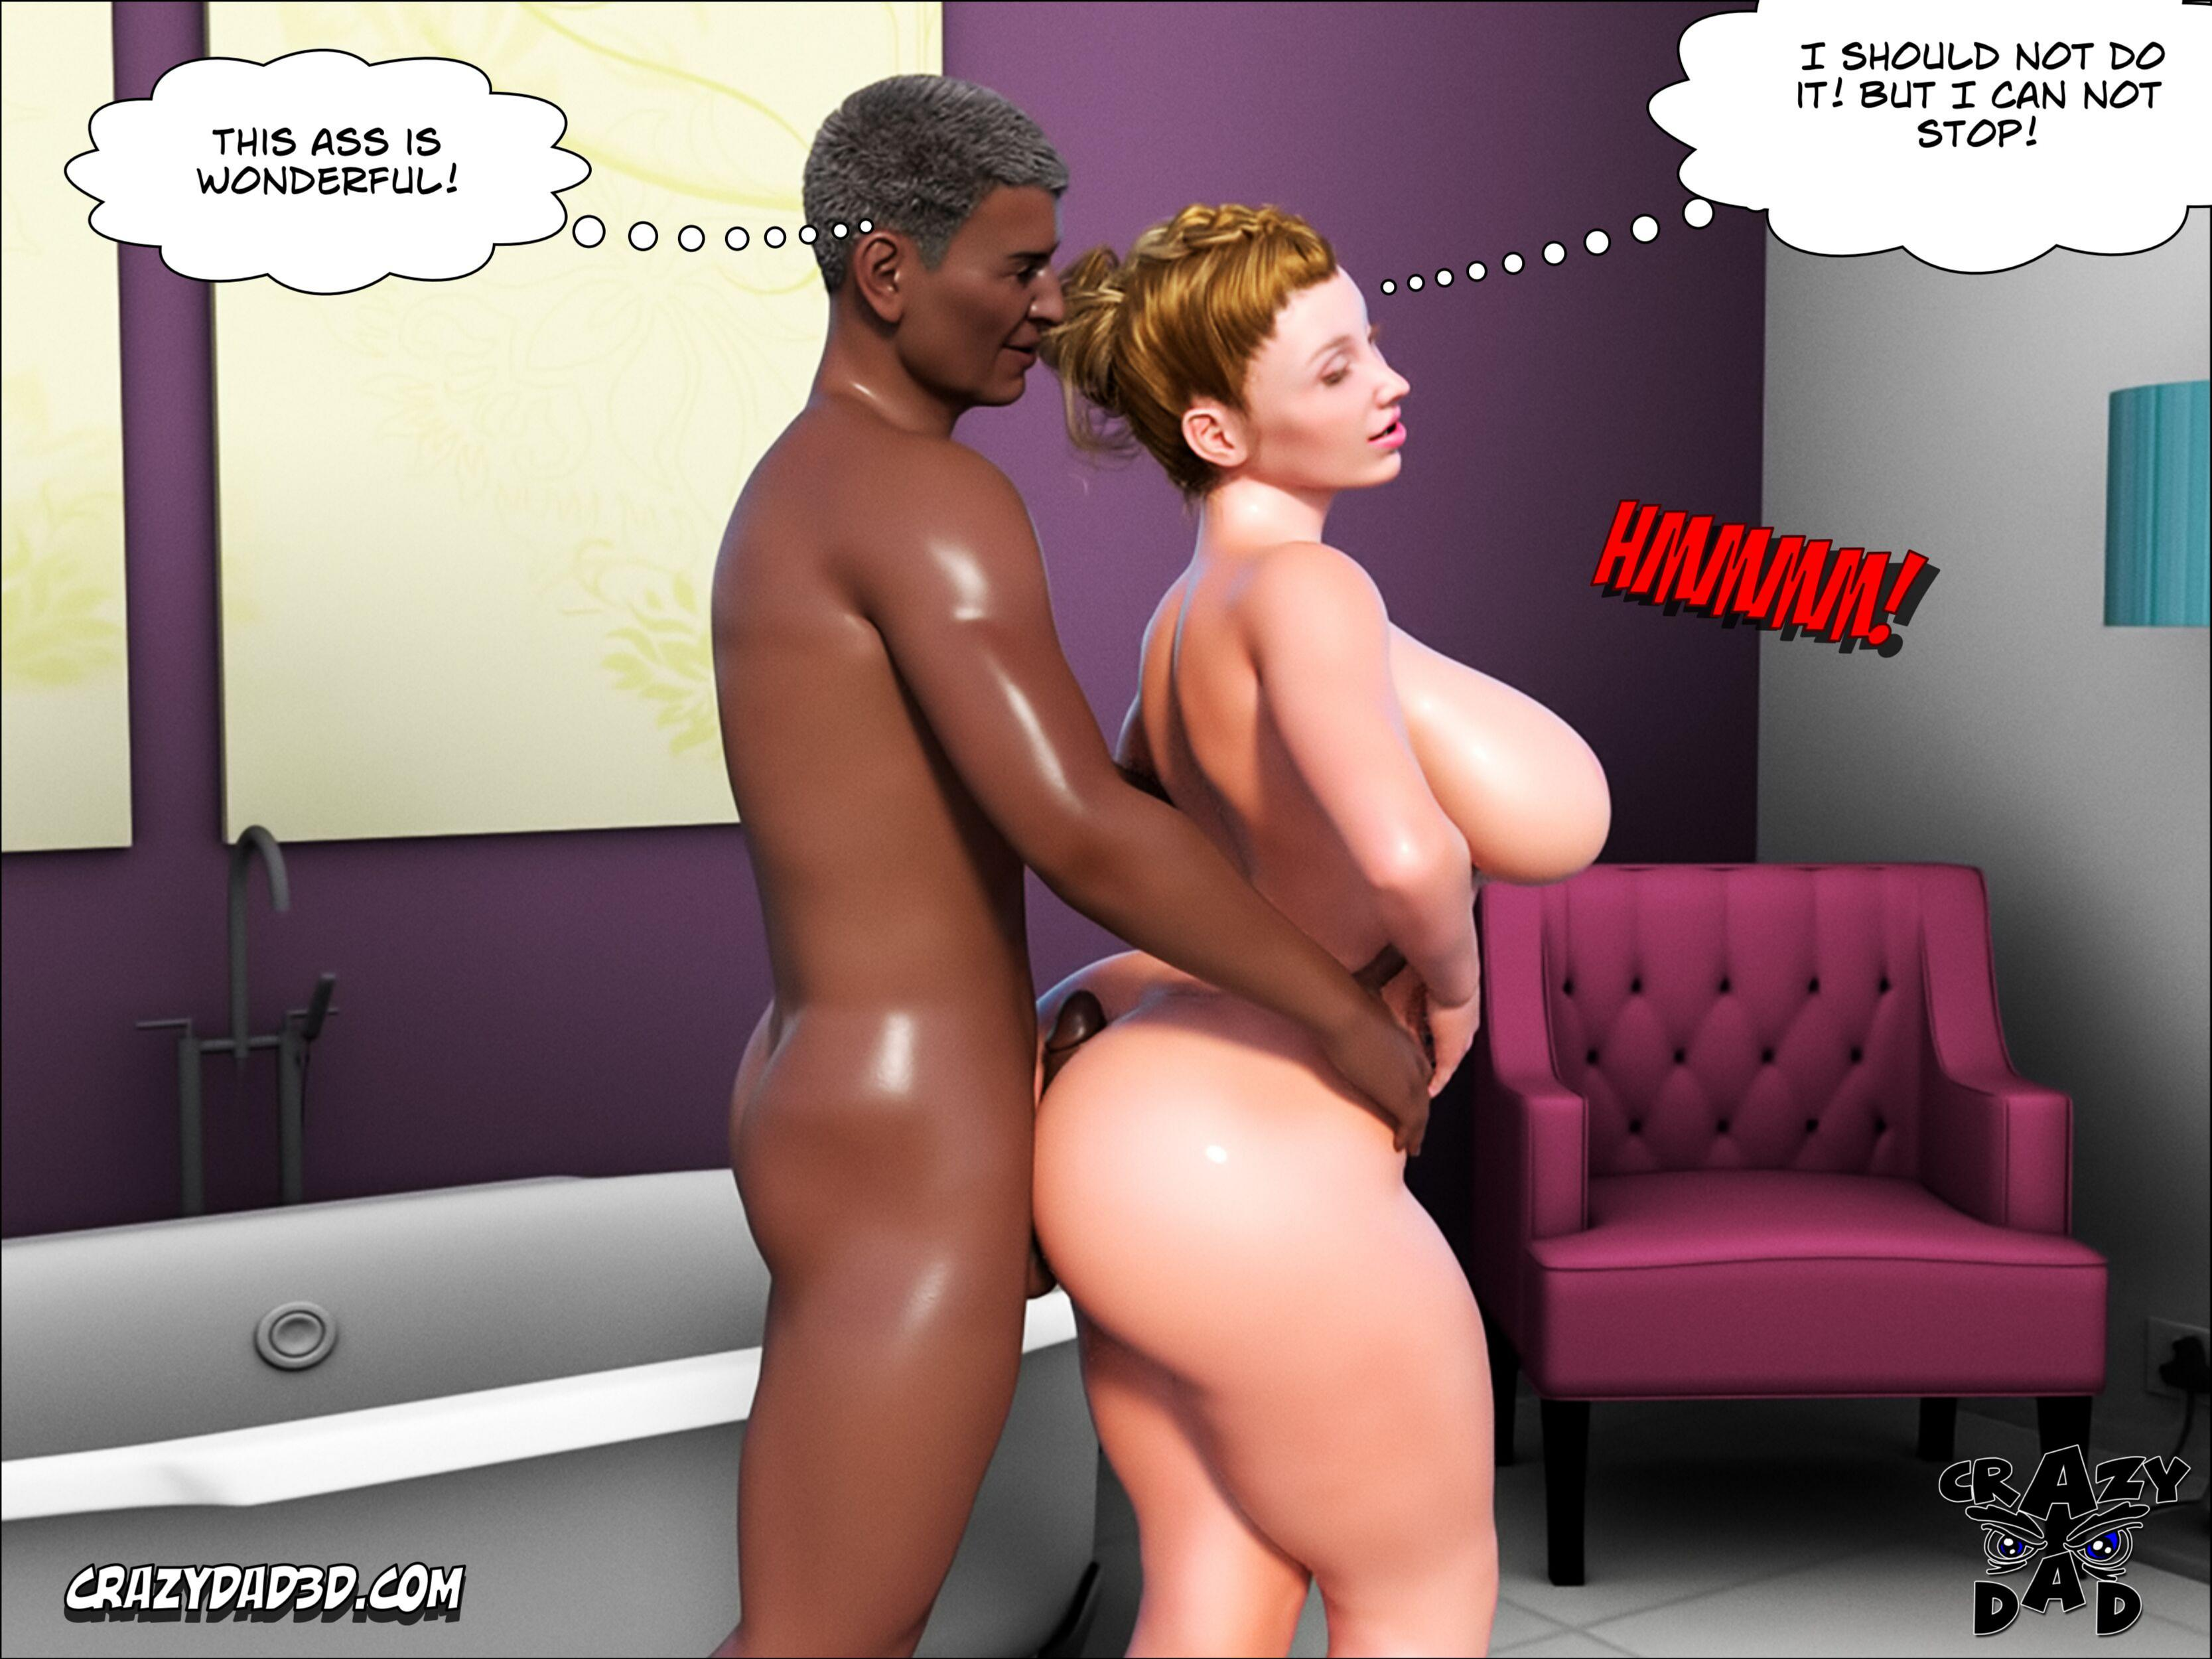 CrazyDad3D – Father in Law at Home 2